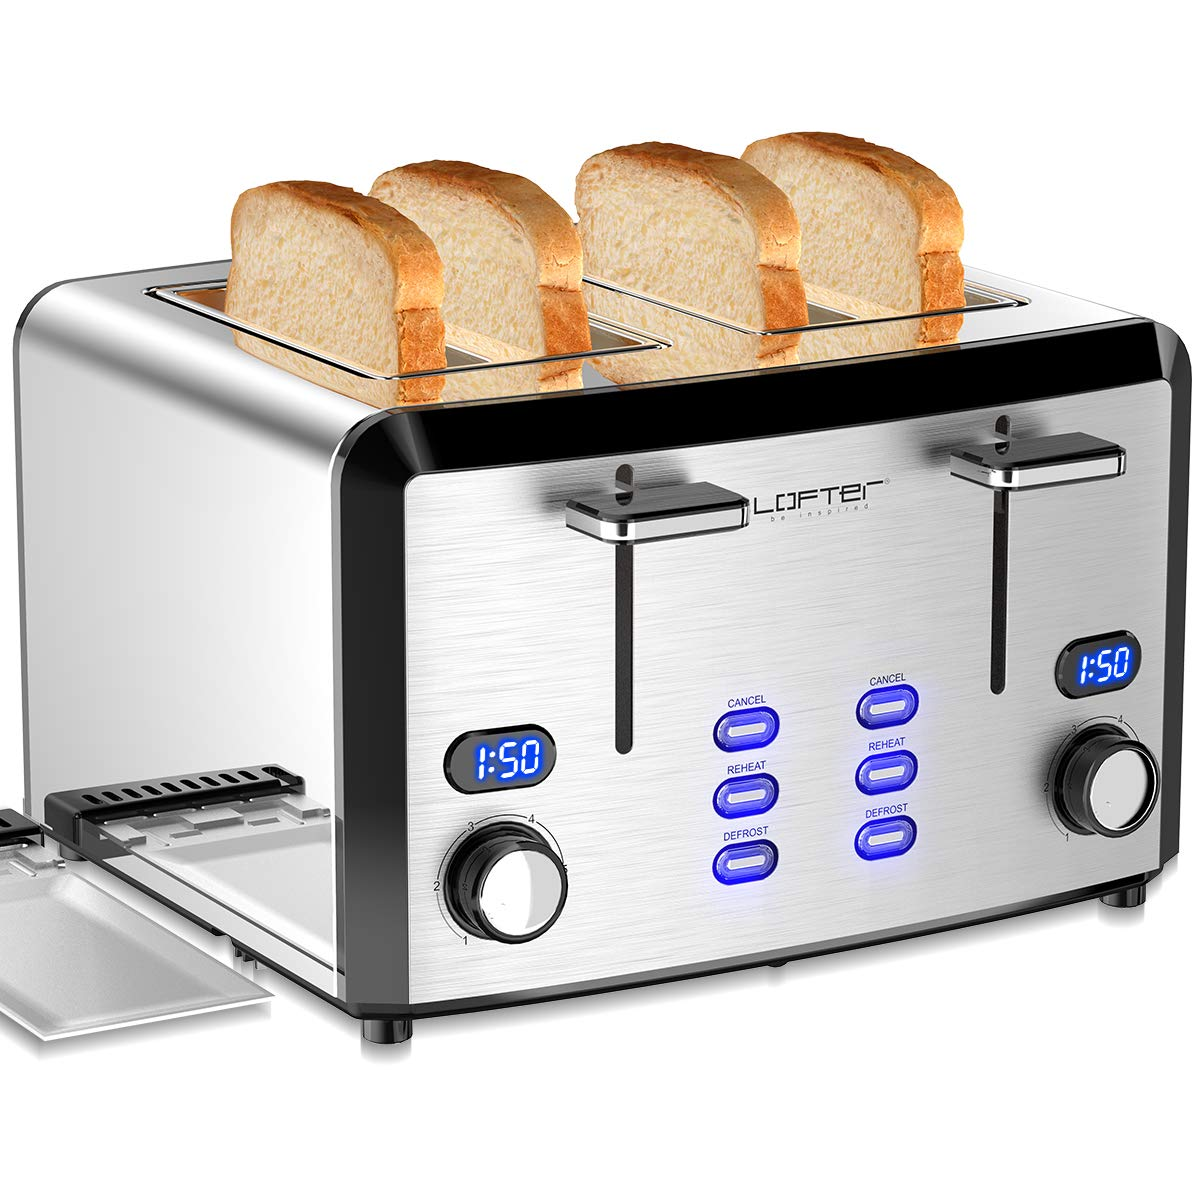 4 Slice Toaster, LOFTER Mirror Stainless Steel Toaster Best Rated Prime, Compact LED Display Toasters with 6 Shade Settings, Extra Wide Slots, Defrost/Reheat/Cancel Function, Removable Crumb Tray, High Lift Lever, 1400W by LOFTer